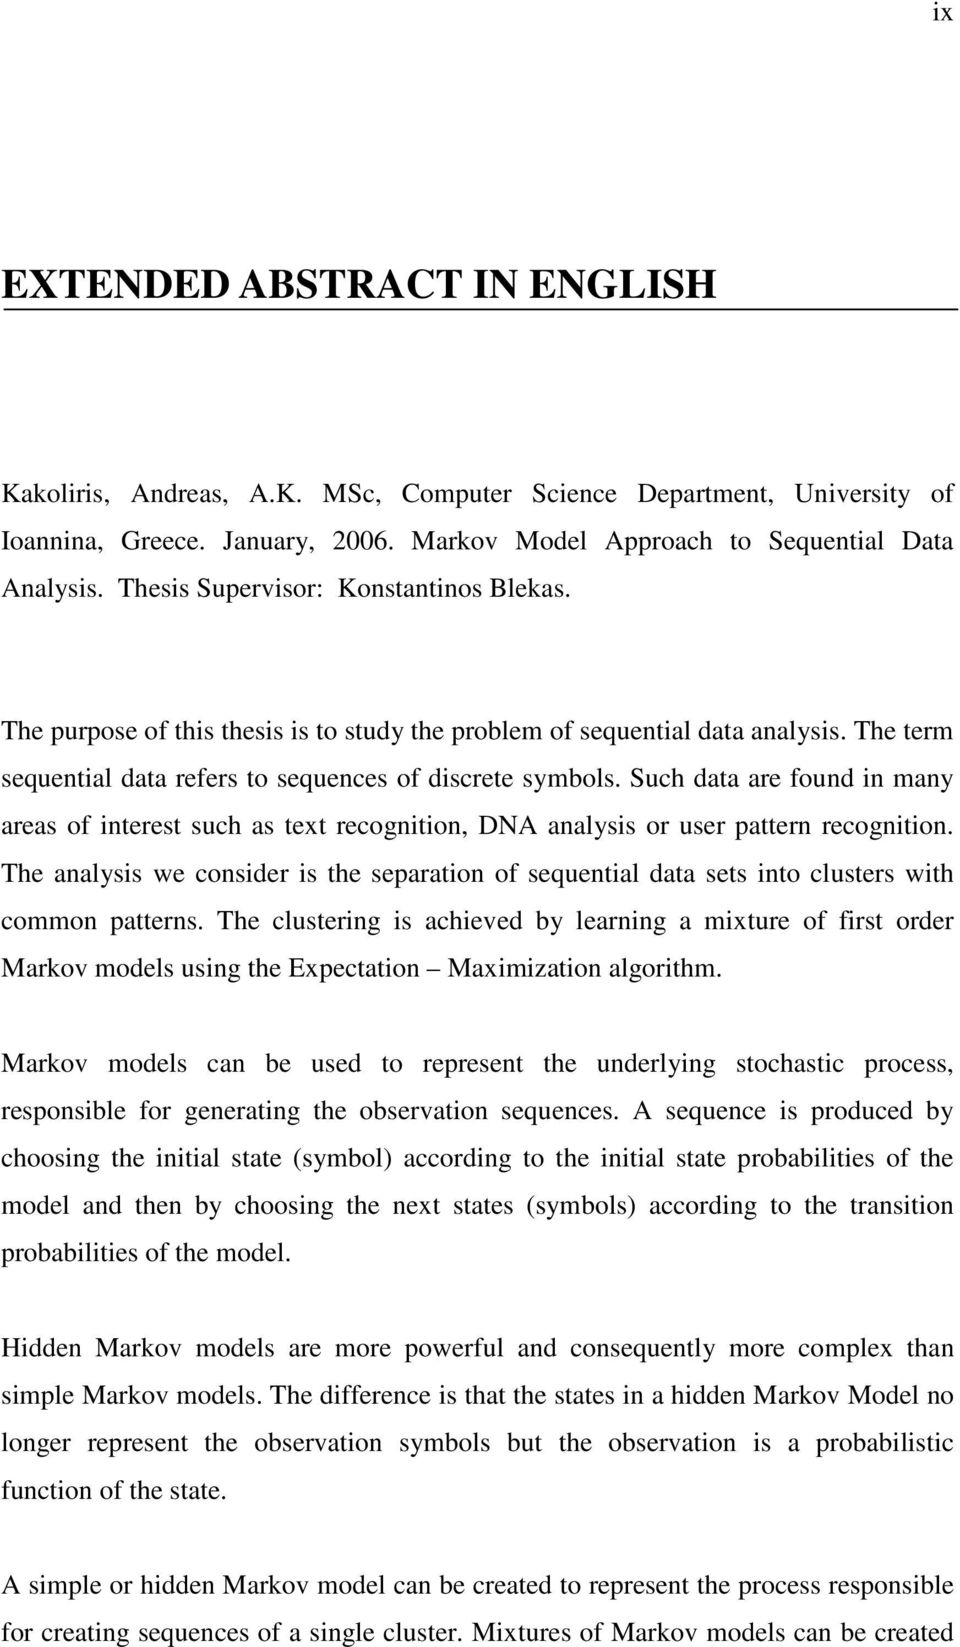 Such data are found n any areas of nterest such as text recognton, DNA analyss or user pattern recognton. The analyss we consder s the separaton of sequental data sets nto clusters wth coon patterns.